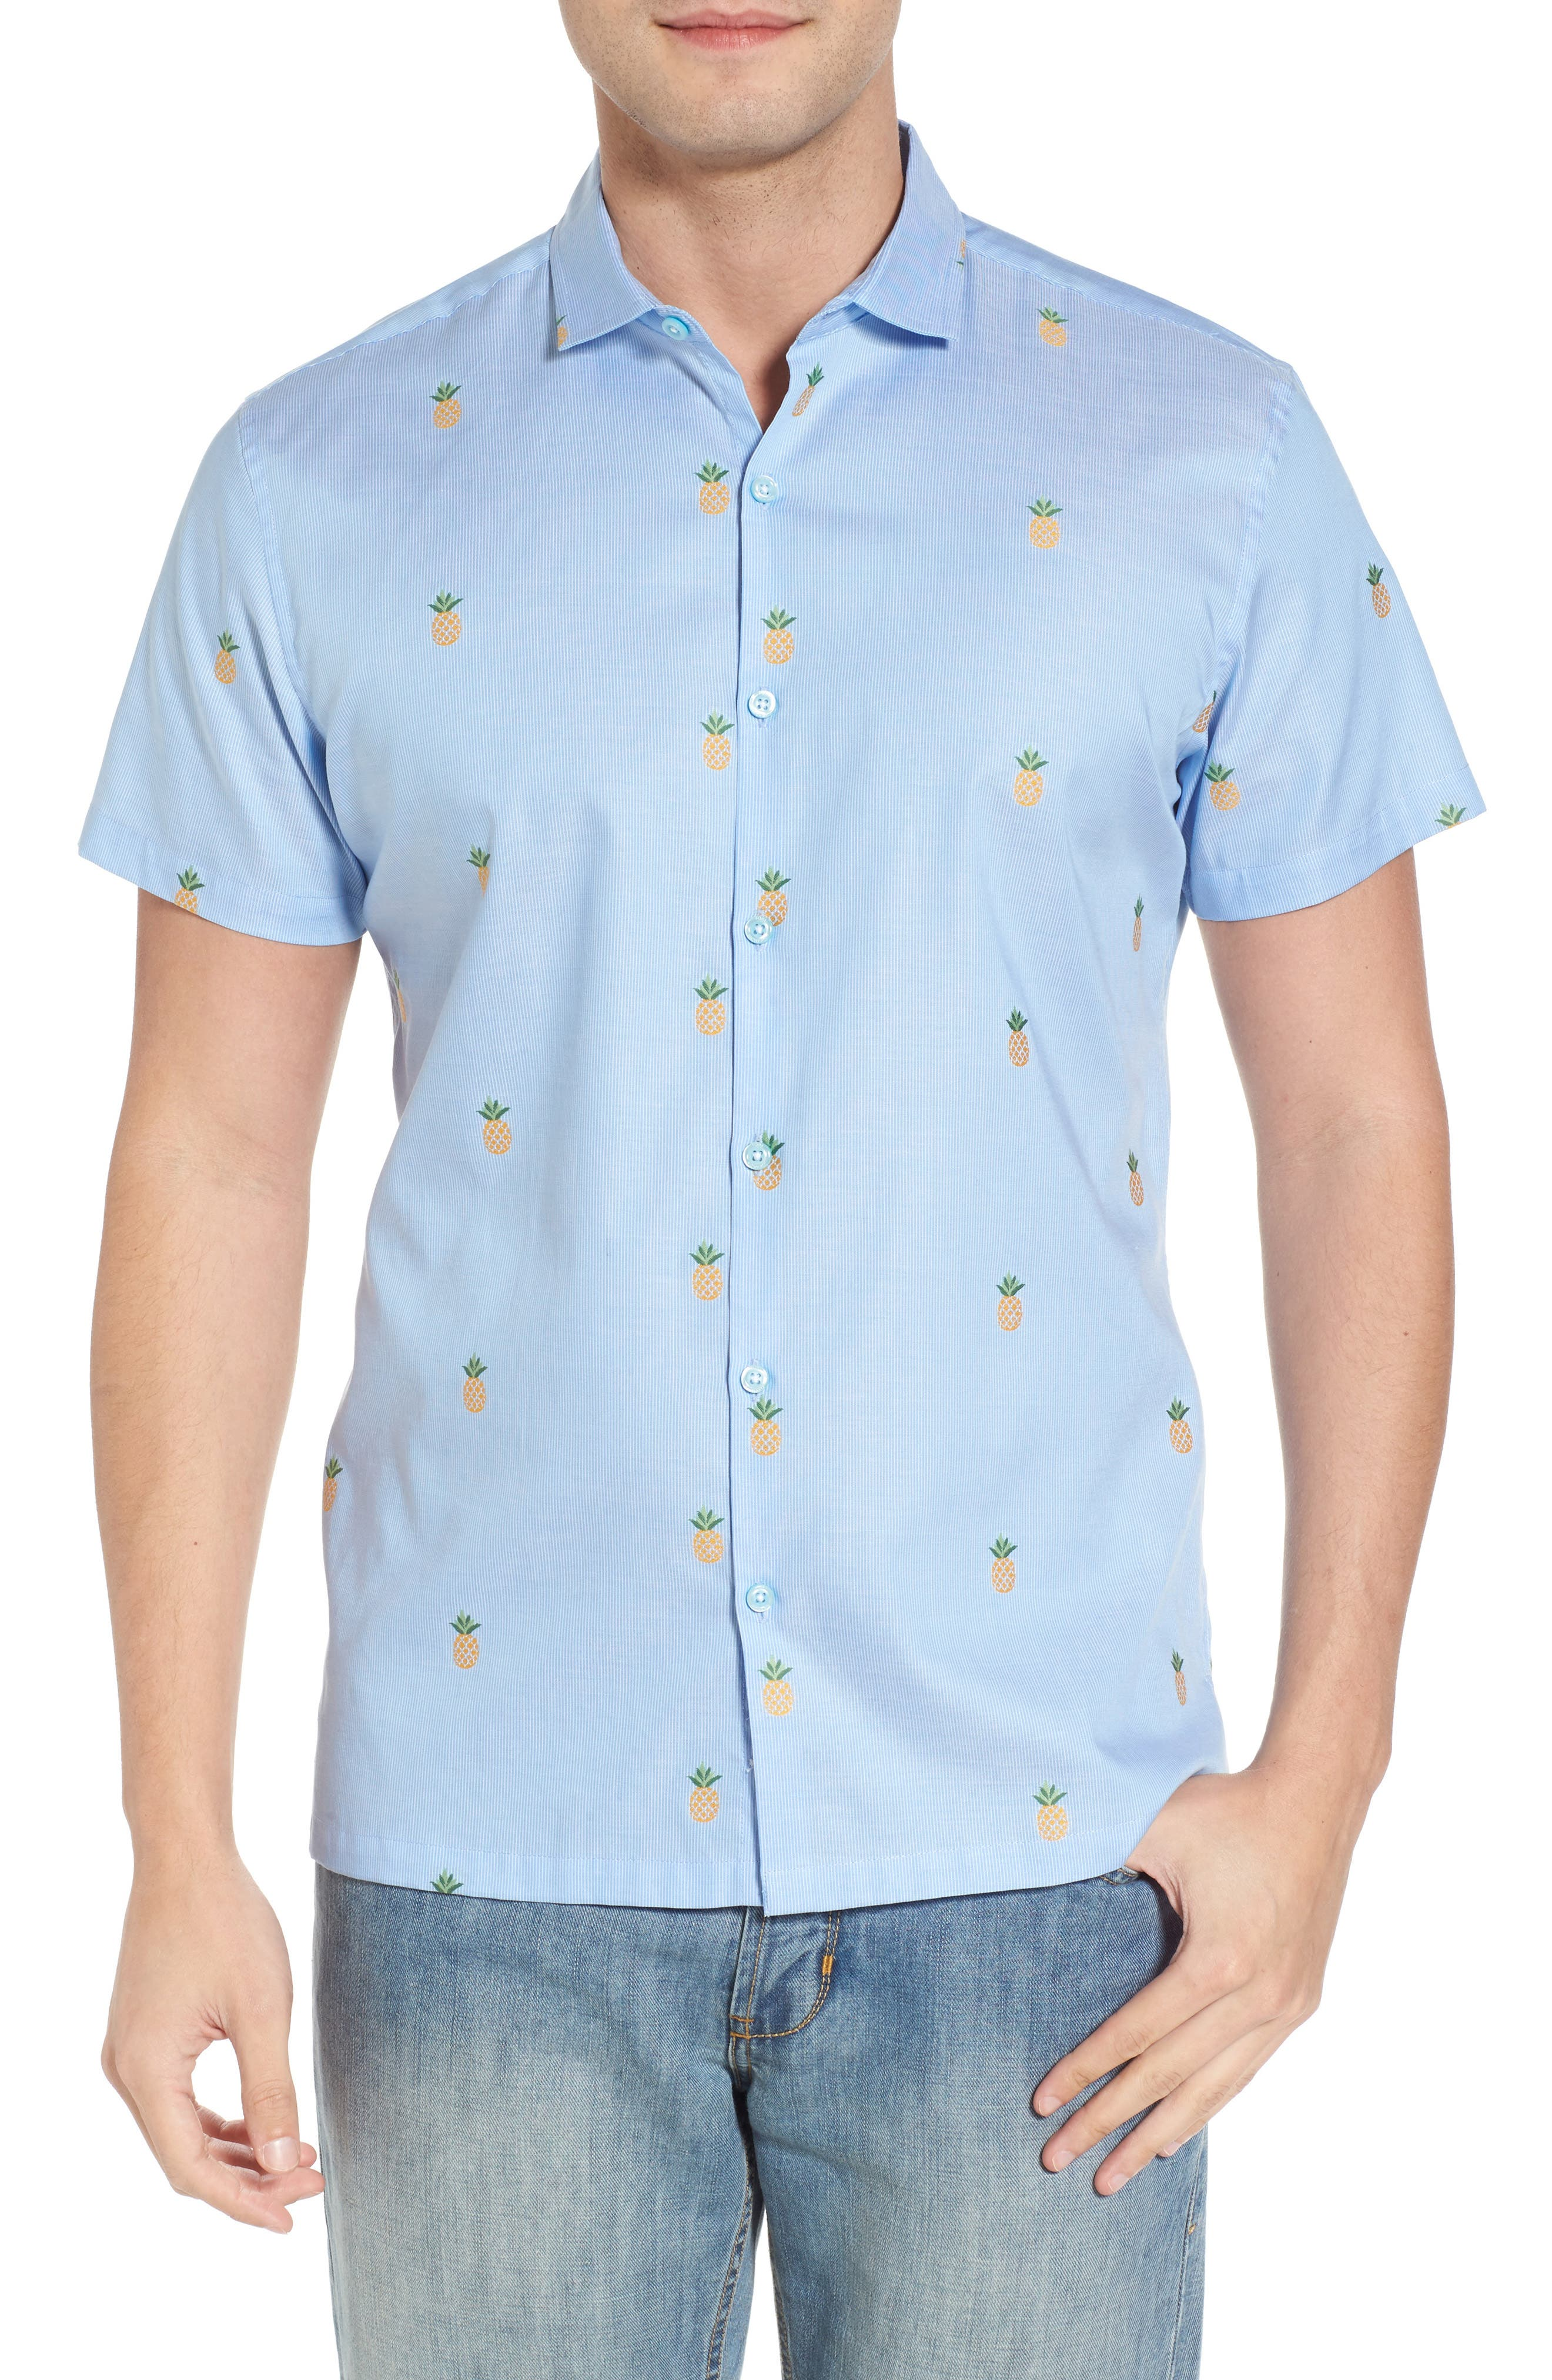 Dole 'N' Row Trim Fit Embroidered Sport Shirt,                         Main,                         color, Blue